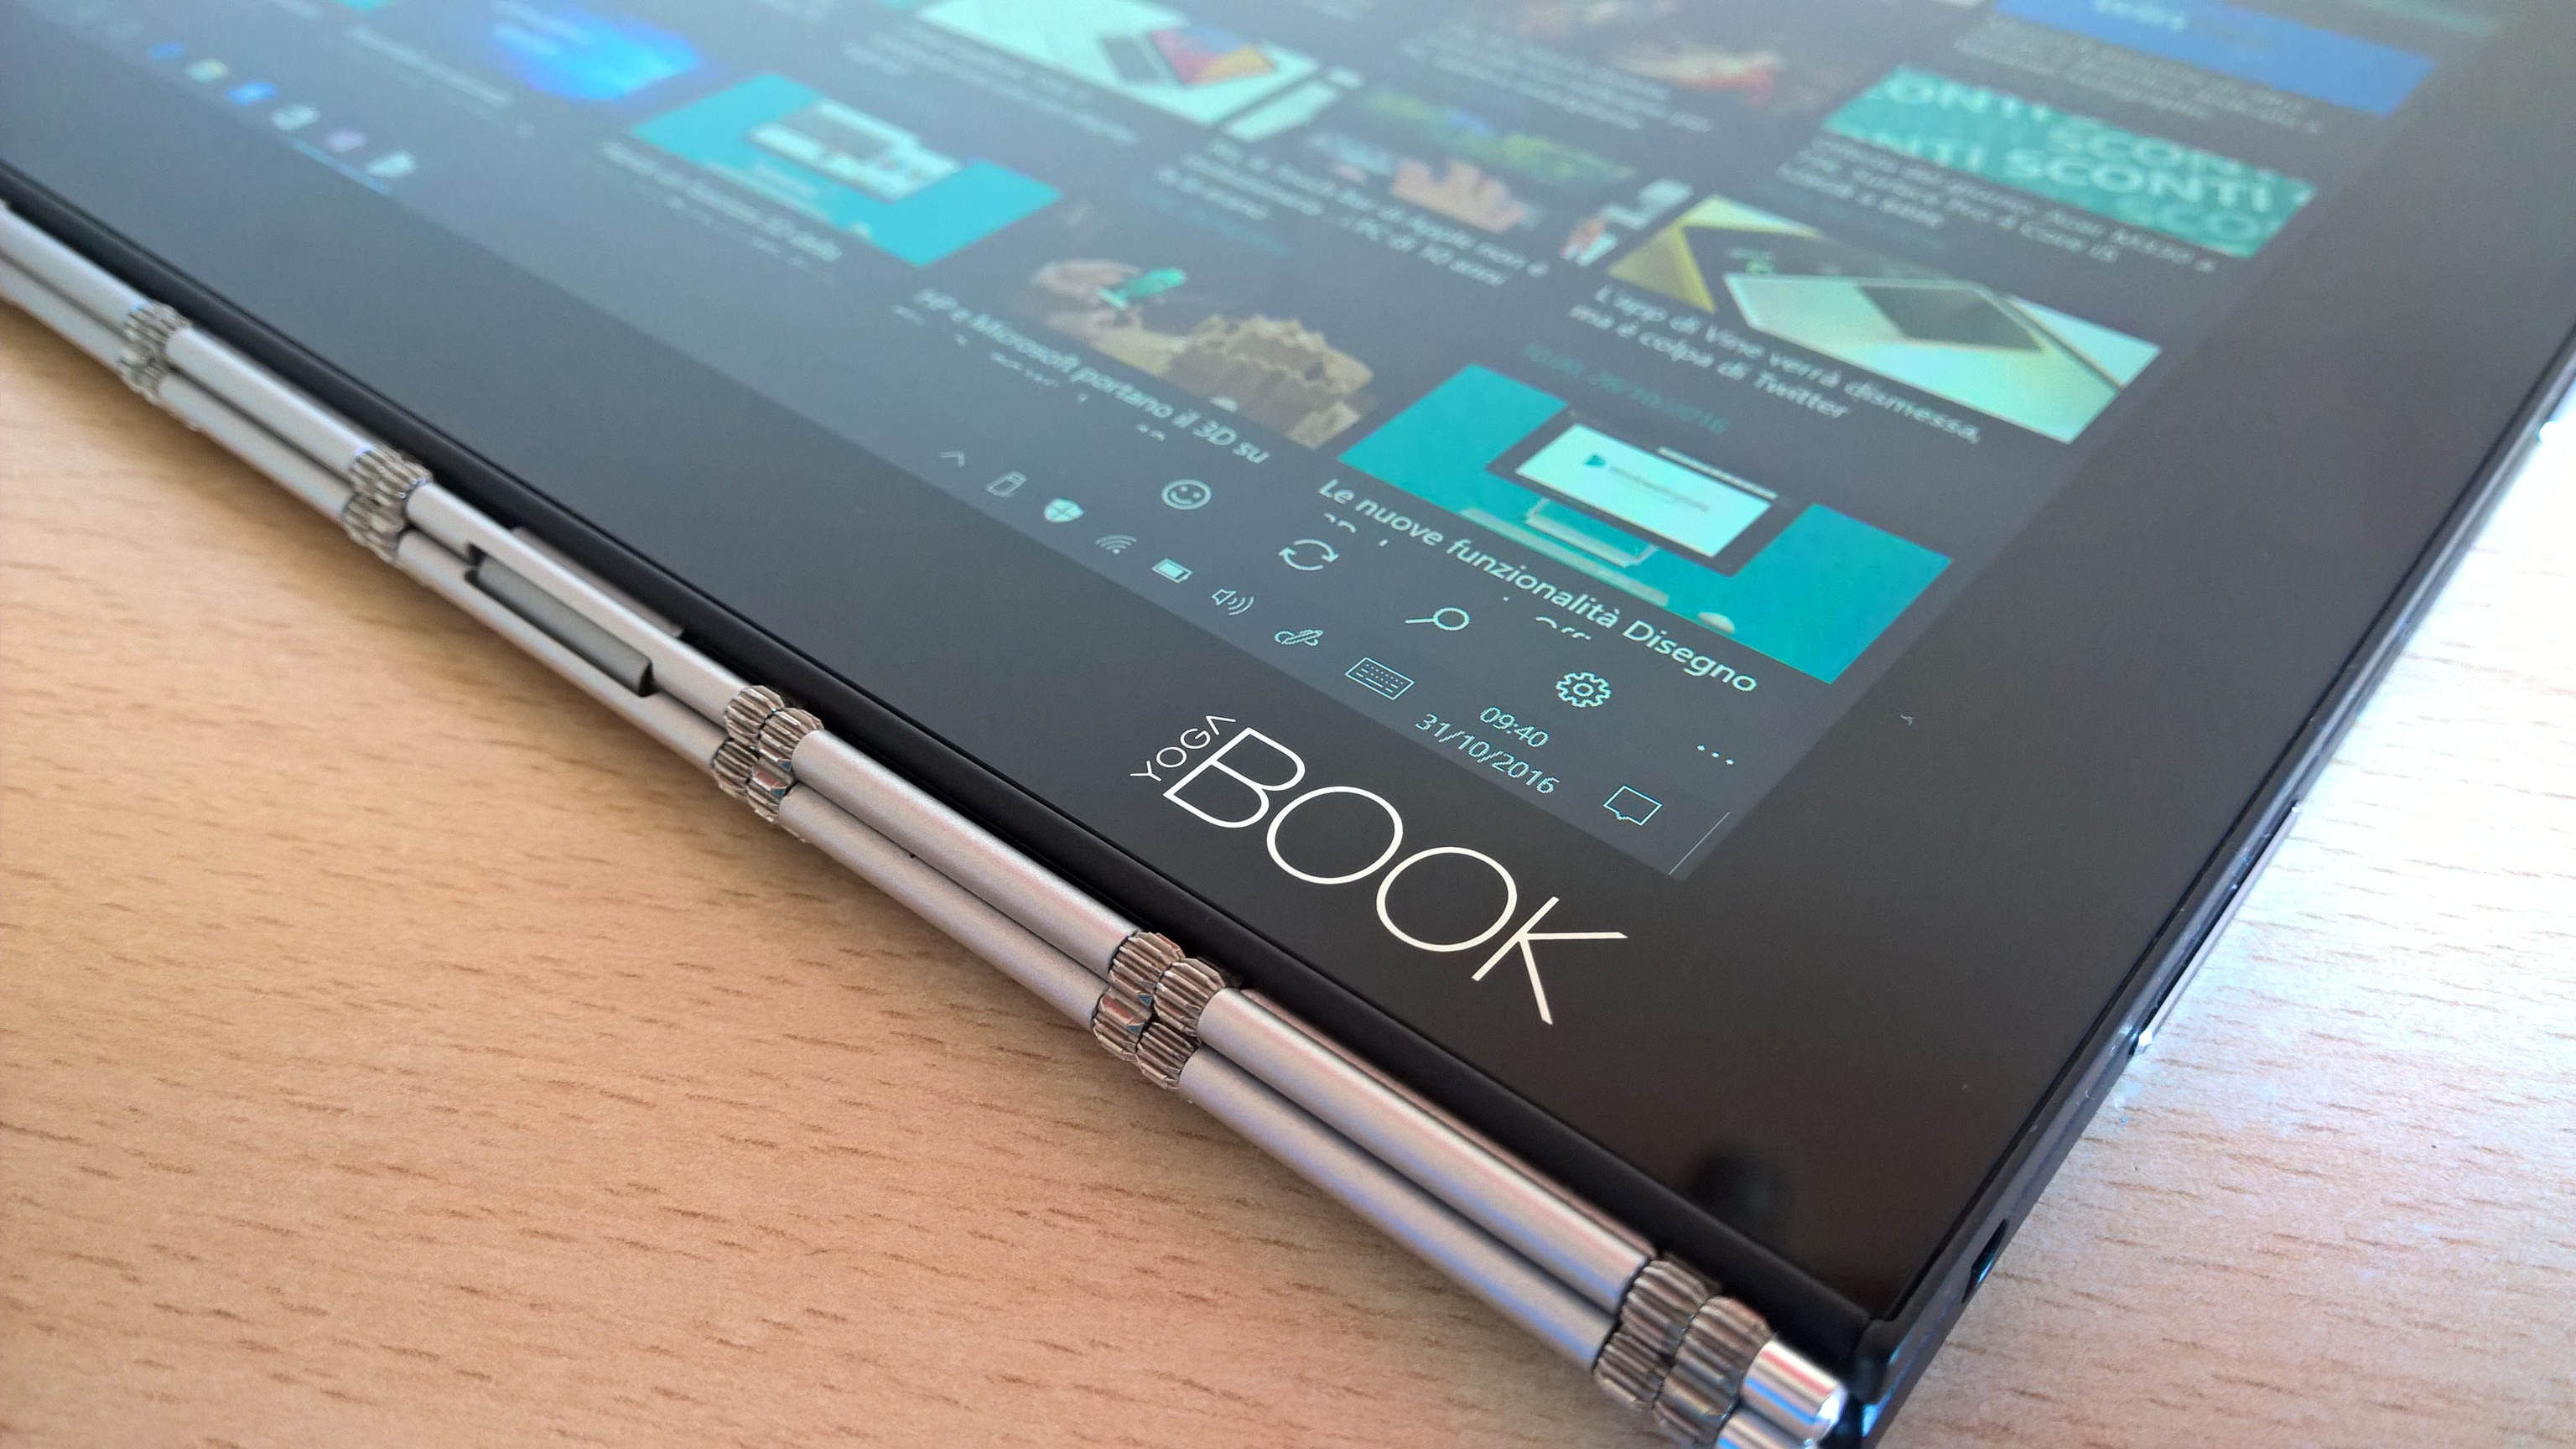 lenovo-yoga-book-display-2